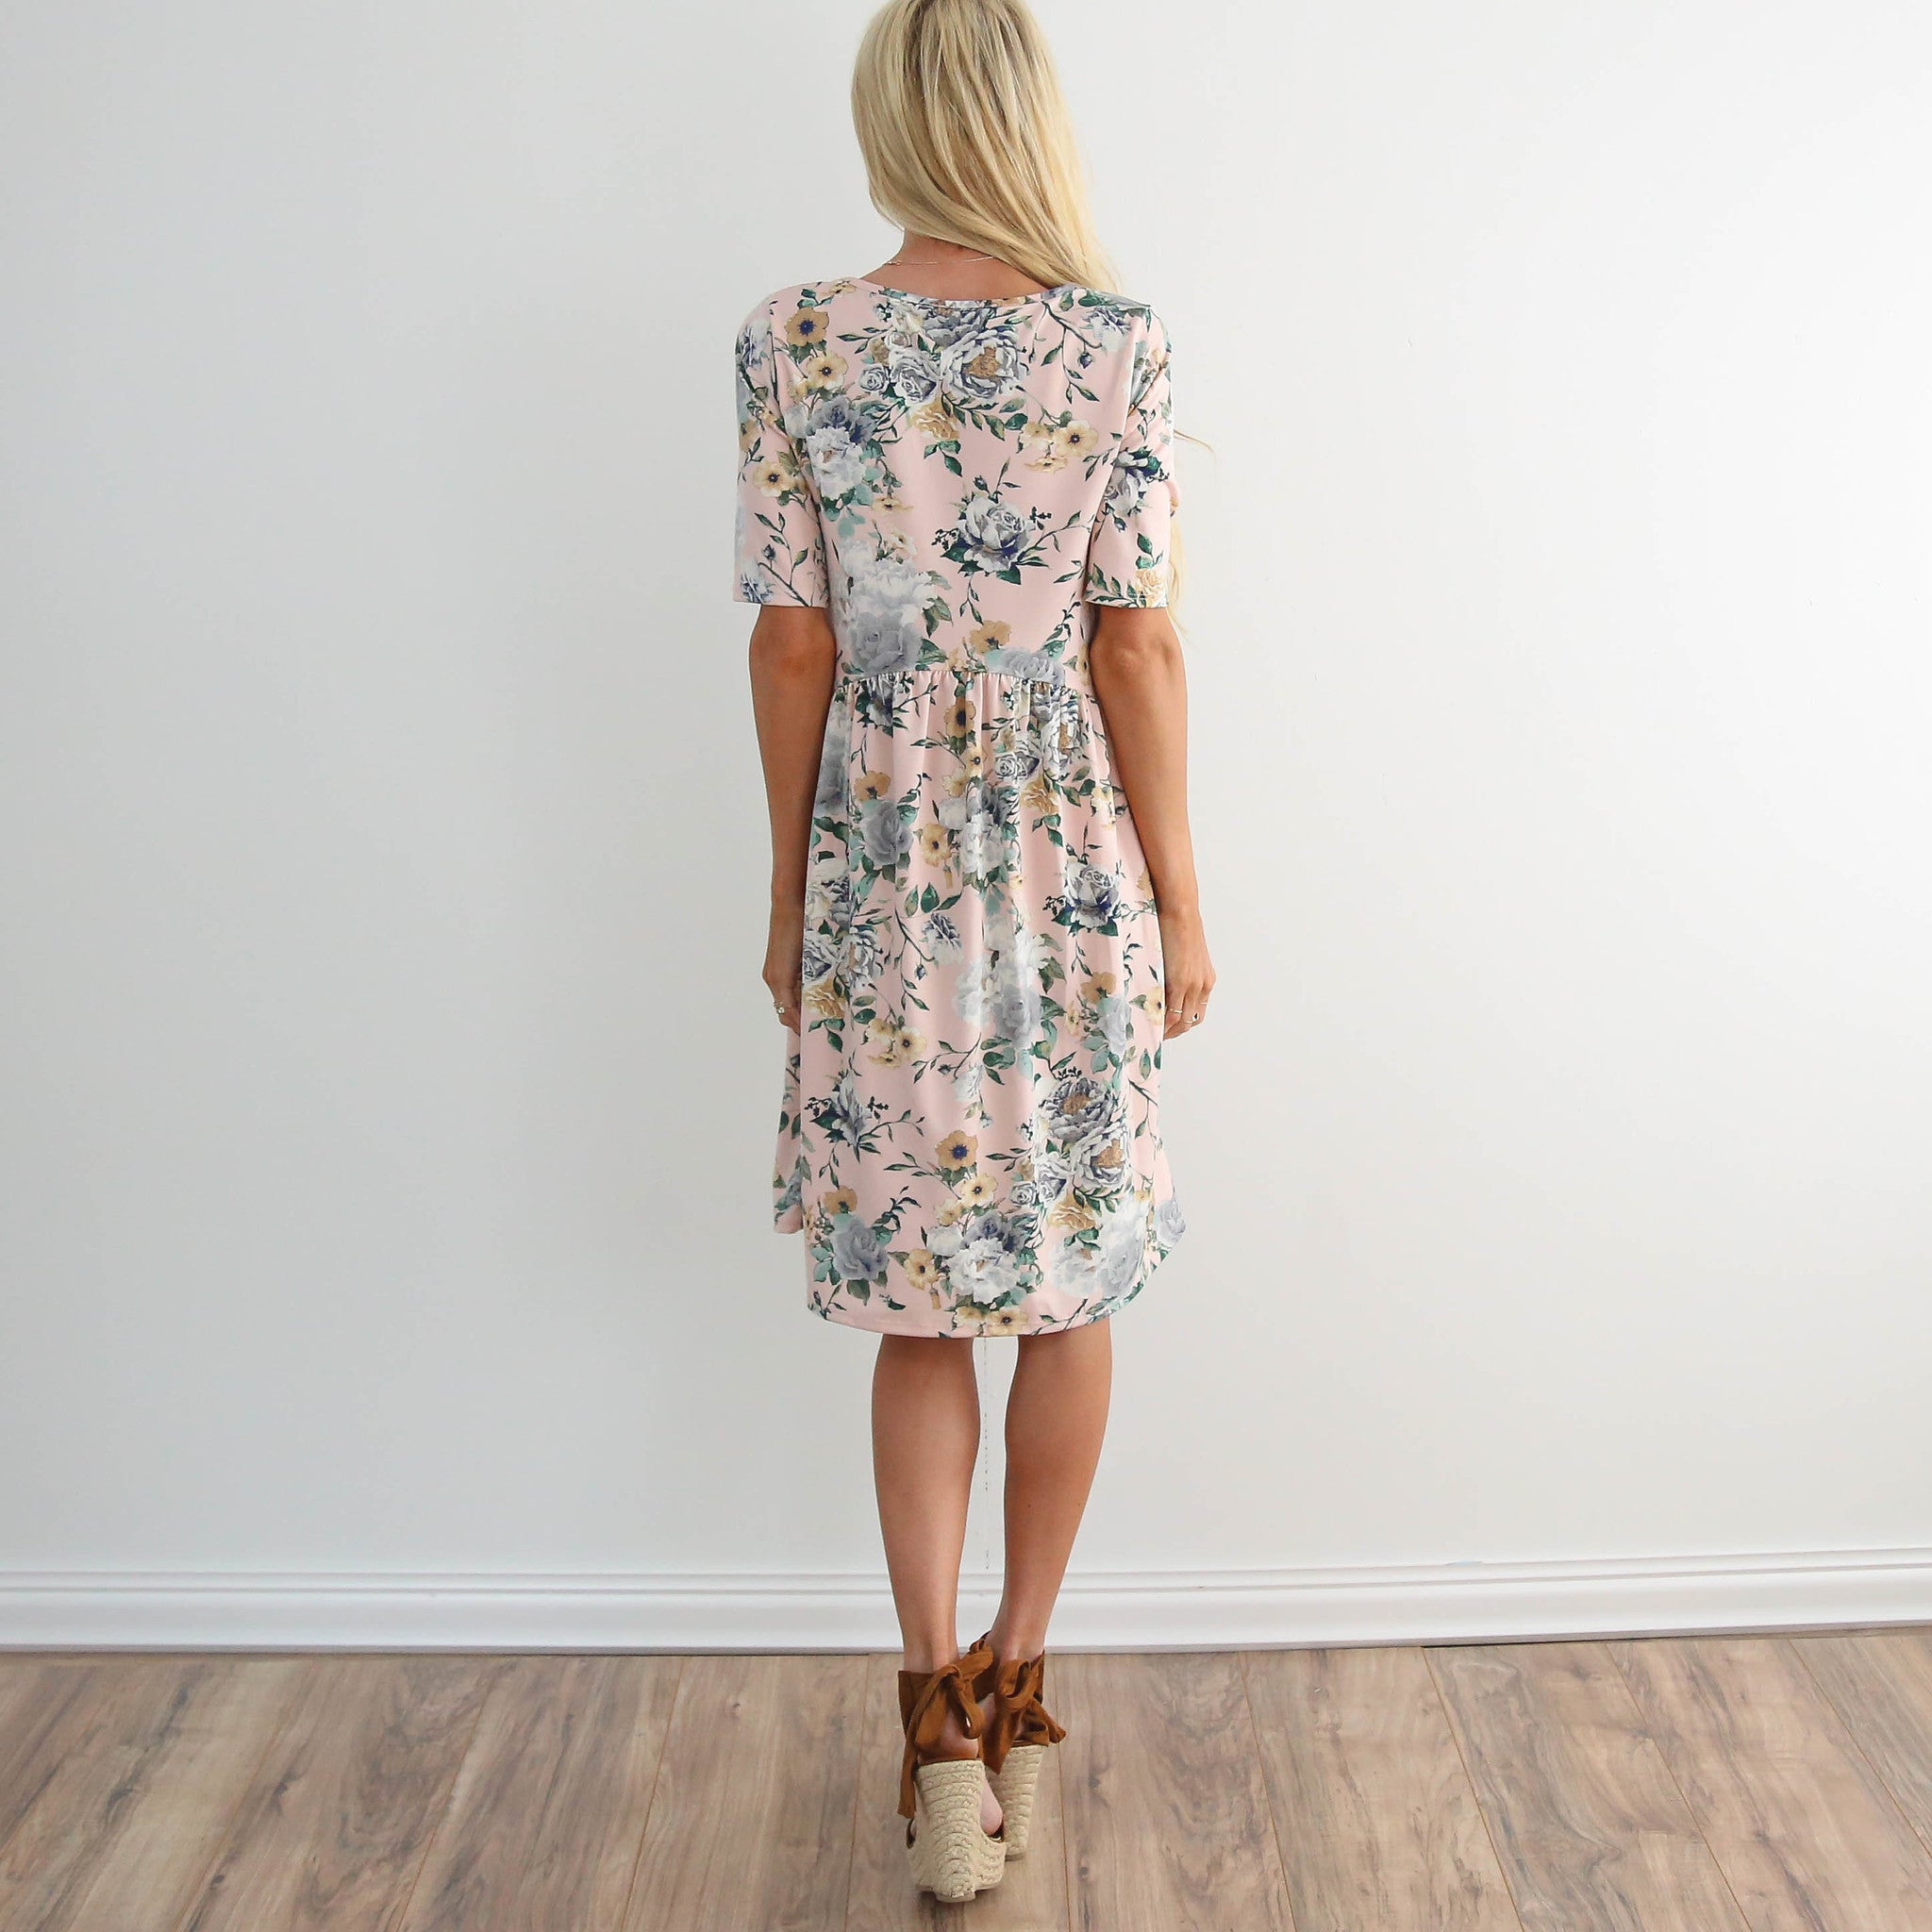 S & Co. Summer Dreams Dress